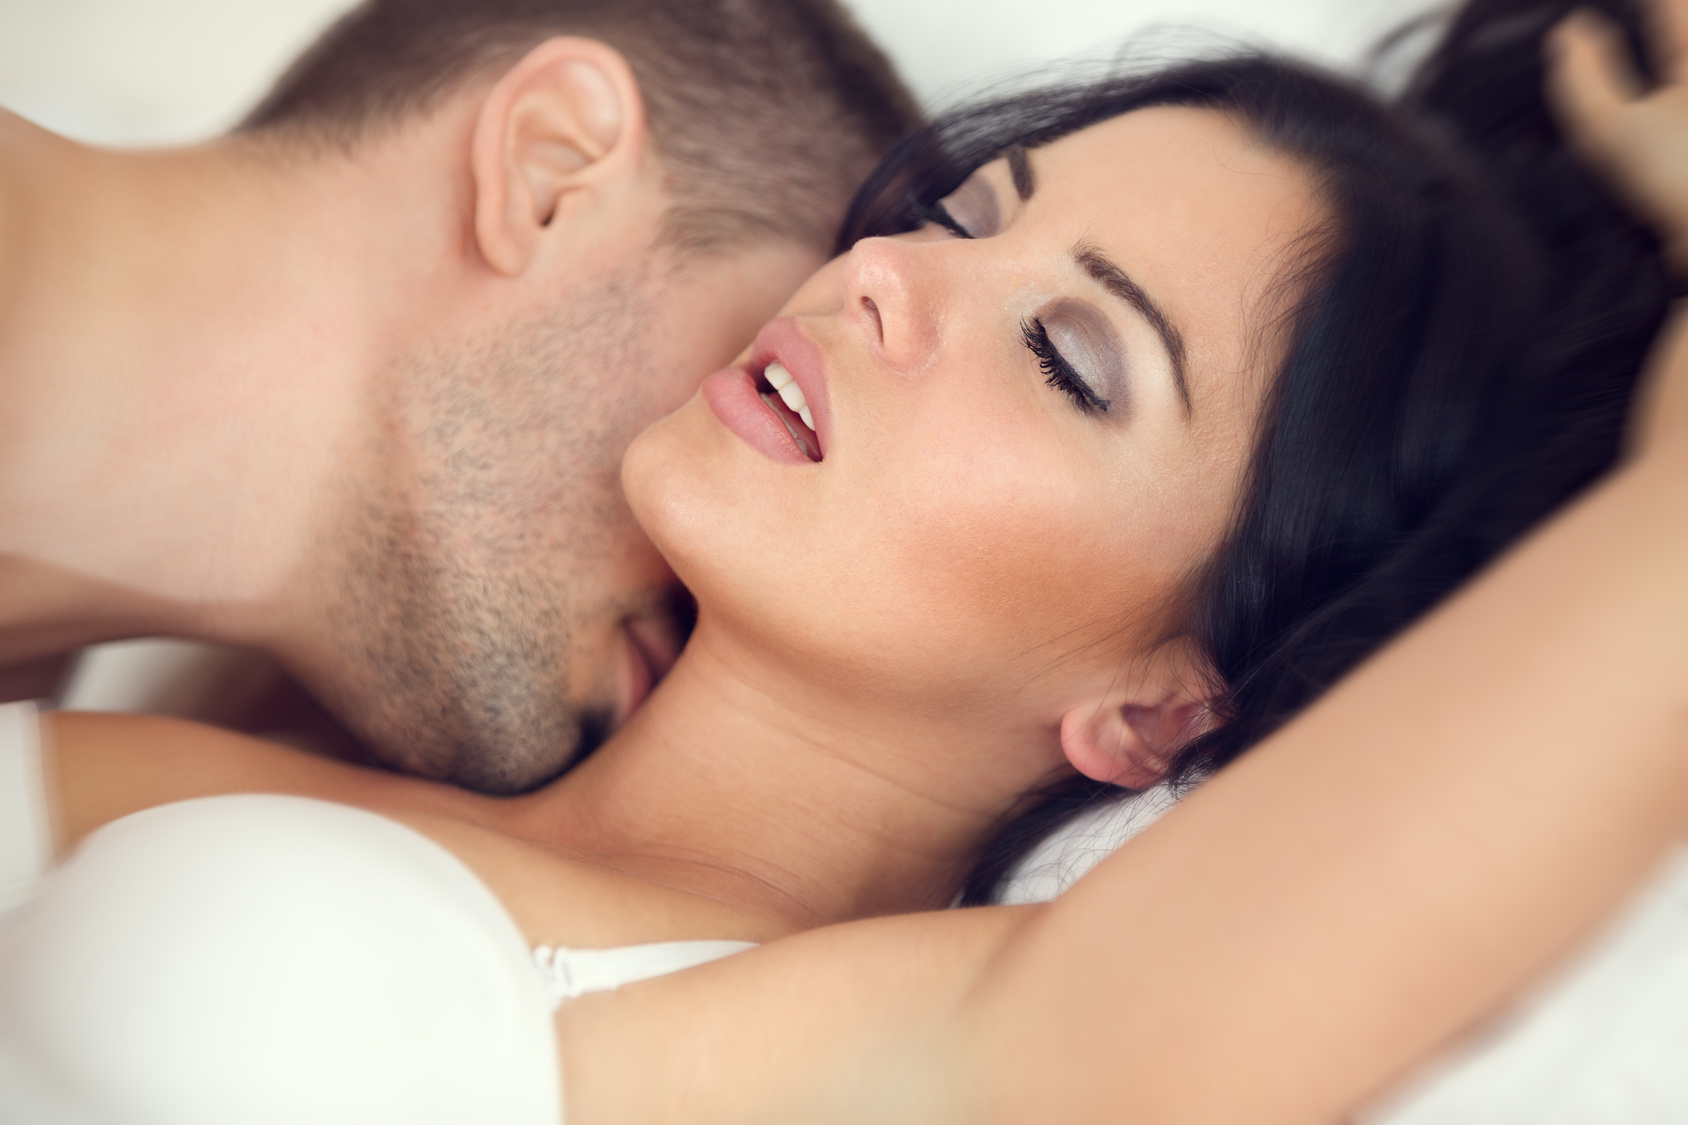 What is the benefit of sex for your health?